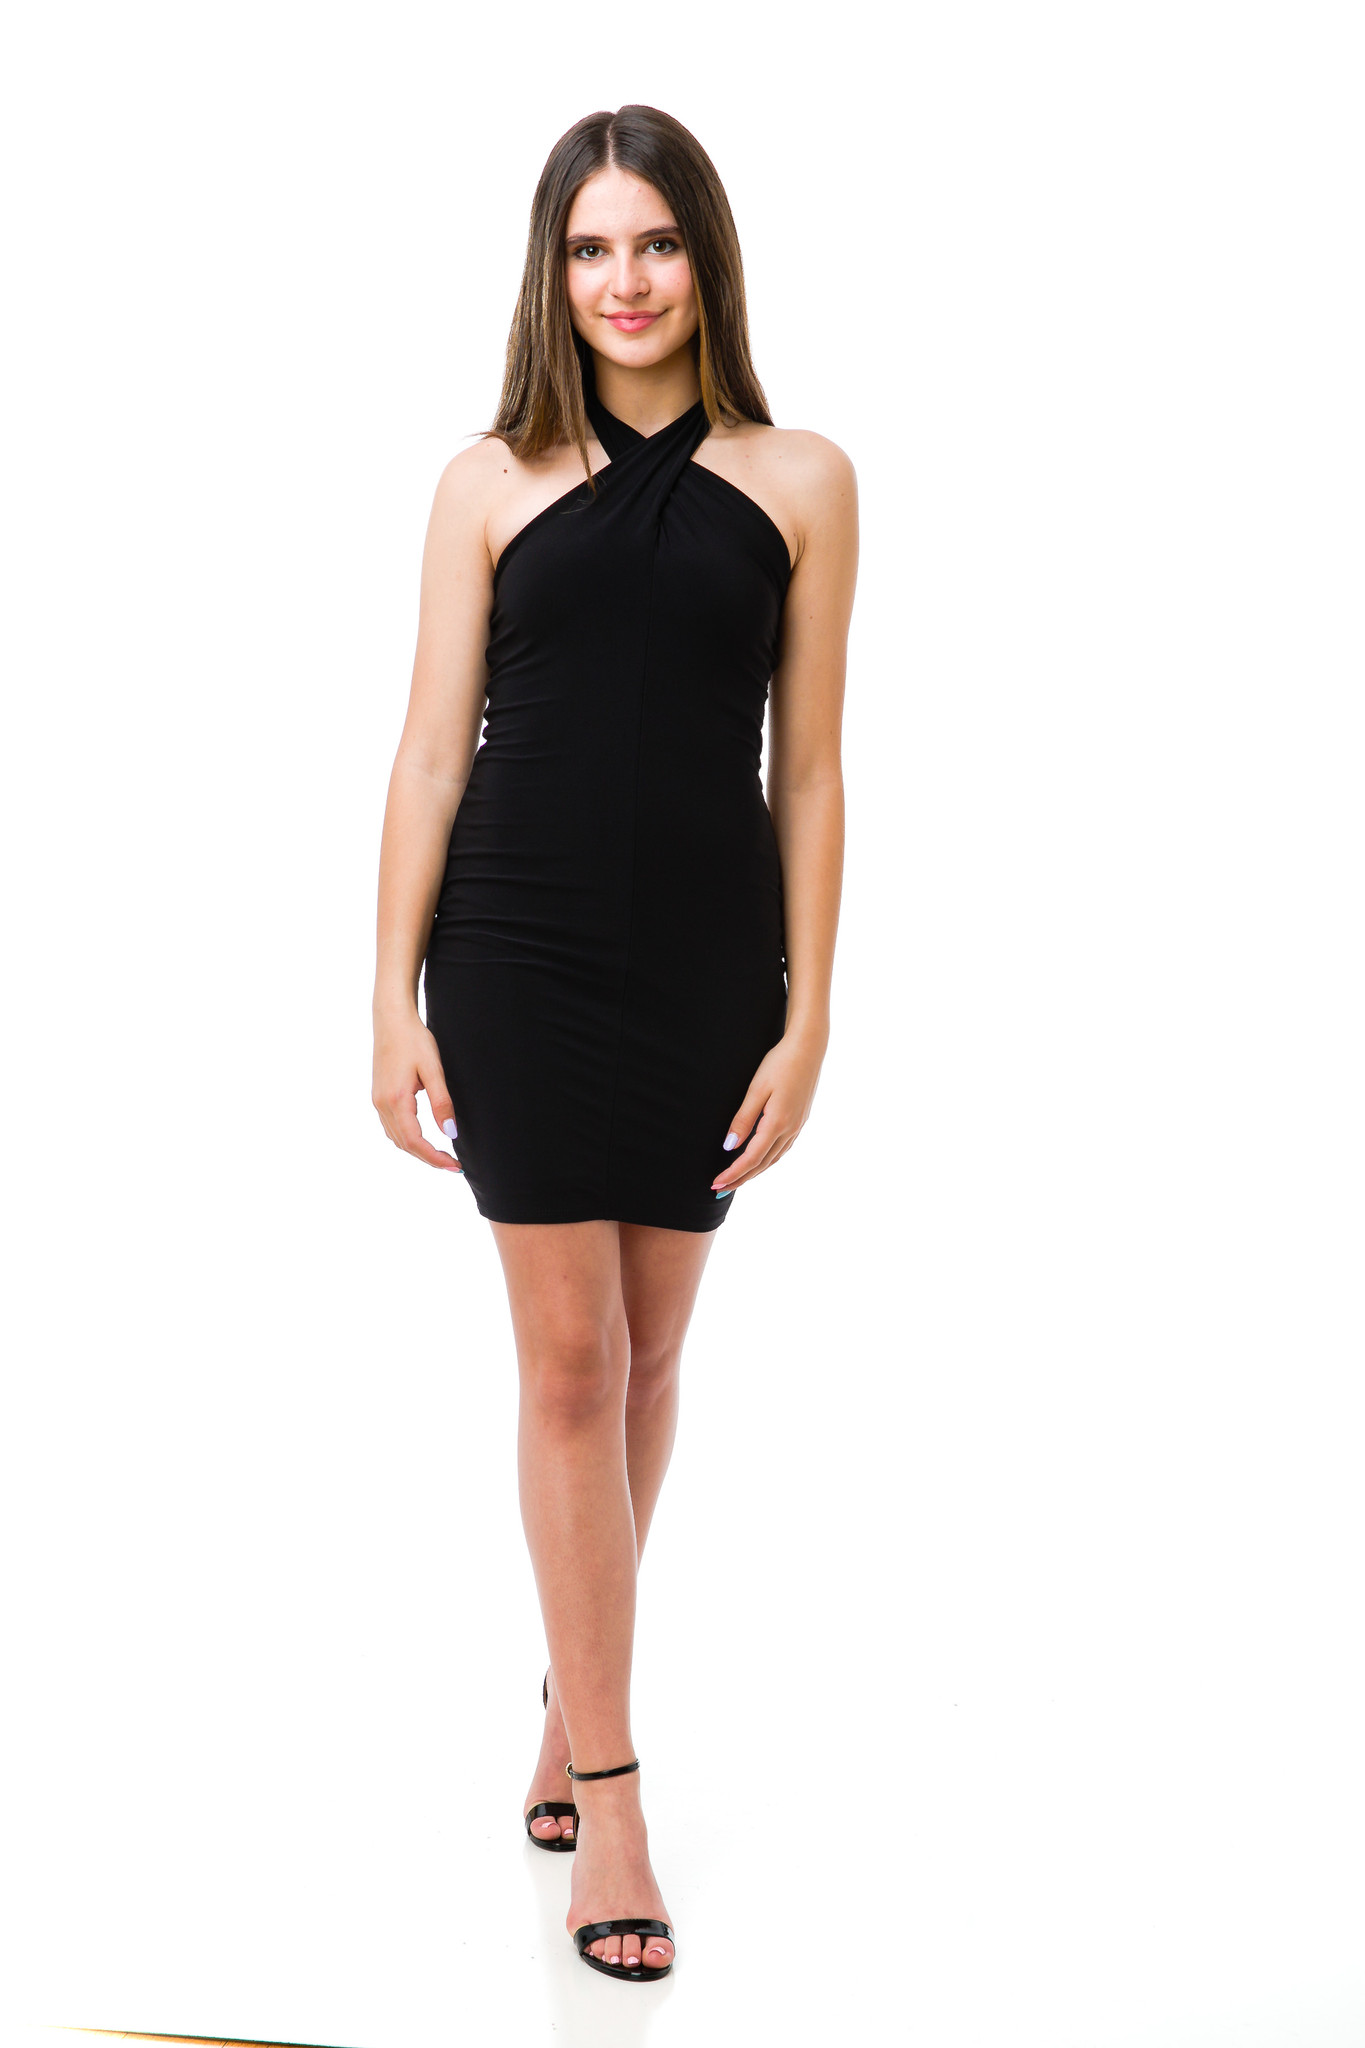 Tween Girls Black Halter Dress in Longer Length full length view with Report shoe.